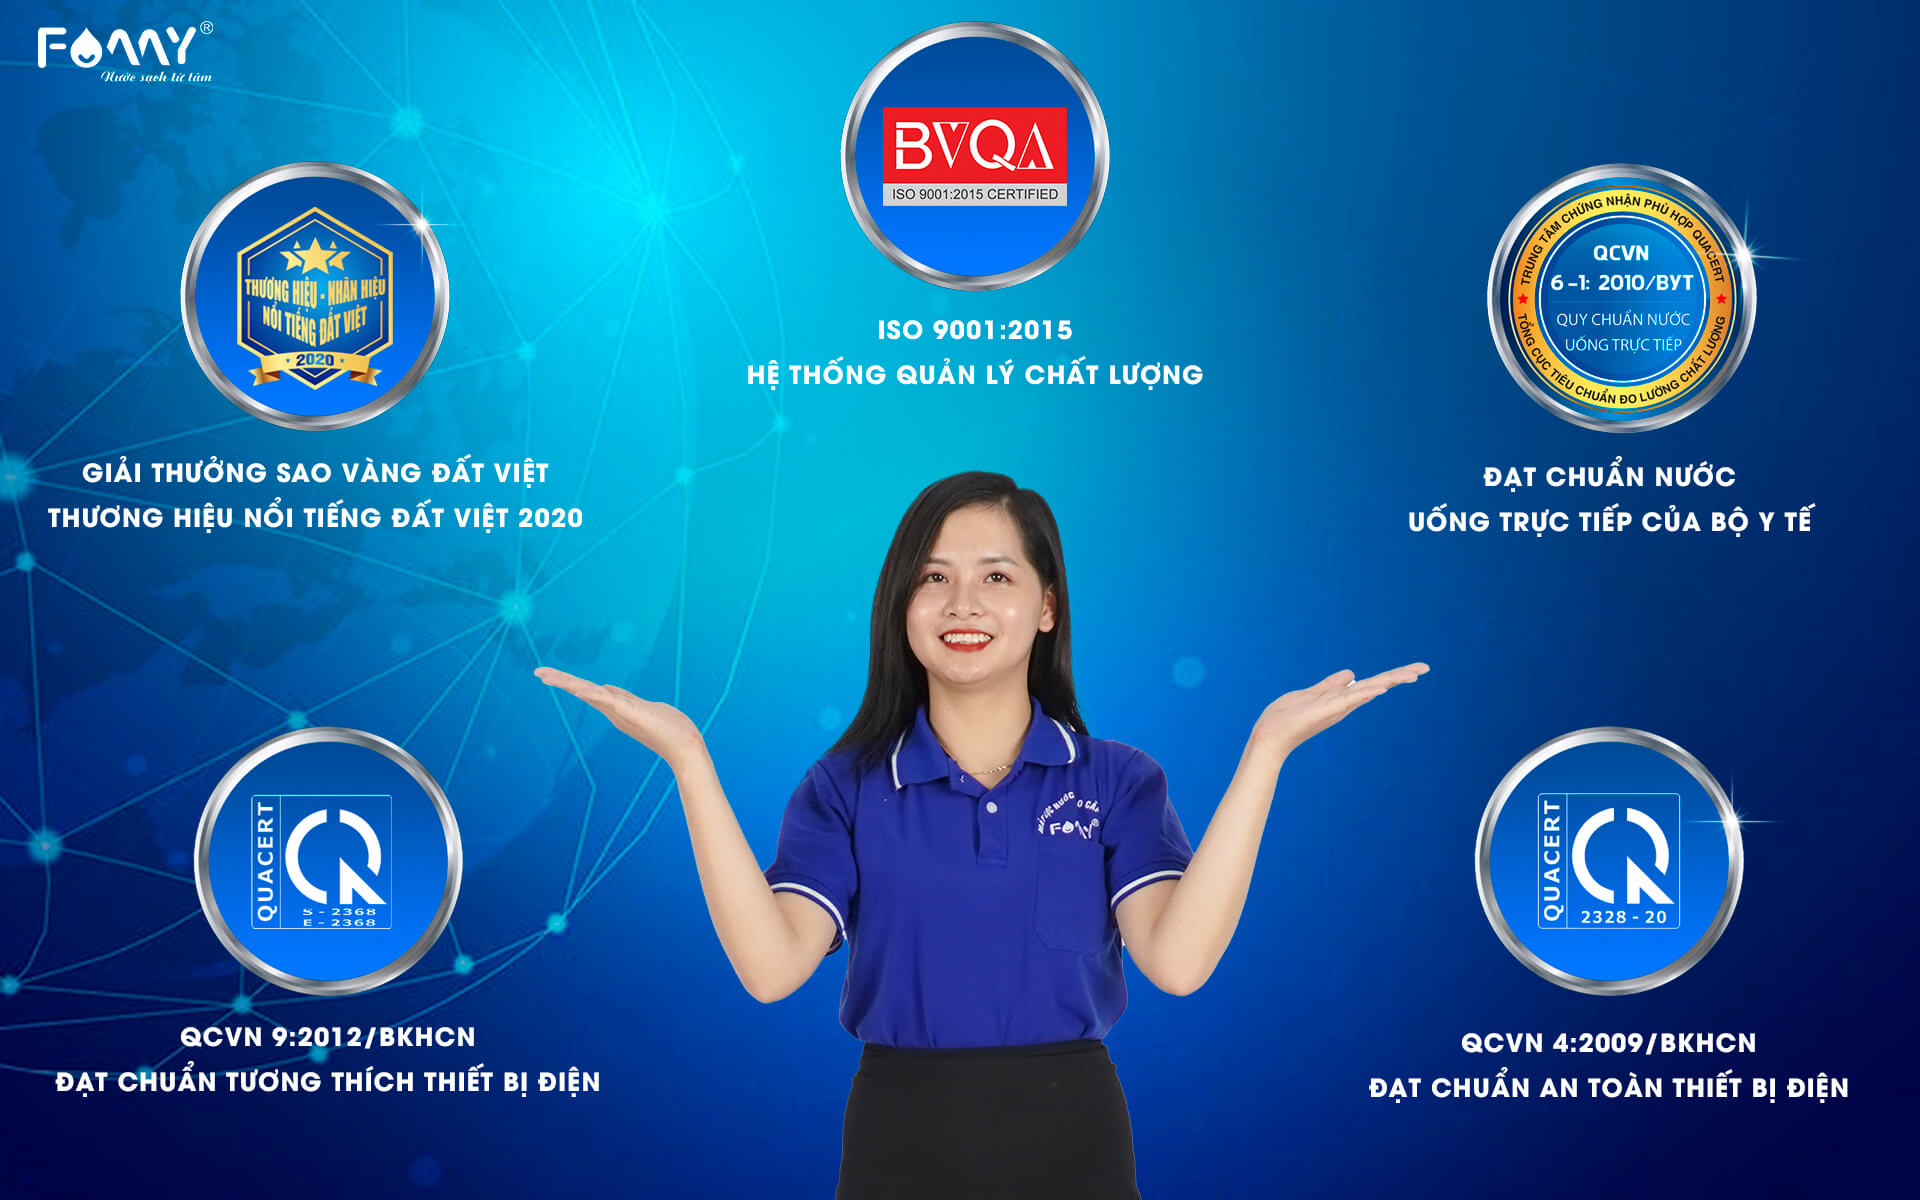 may-loc-nuoc-gia-dinh-famy-may-loc-nuoc-so-1-viet-nam.jpg